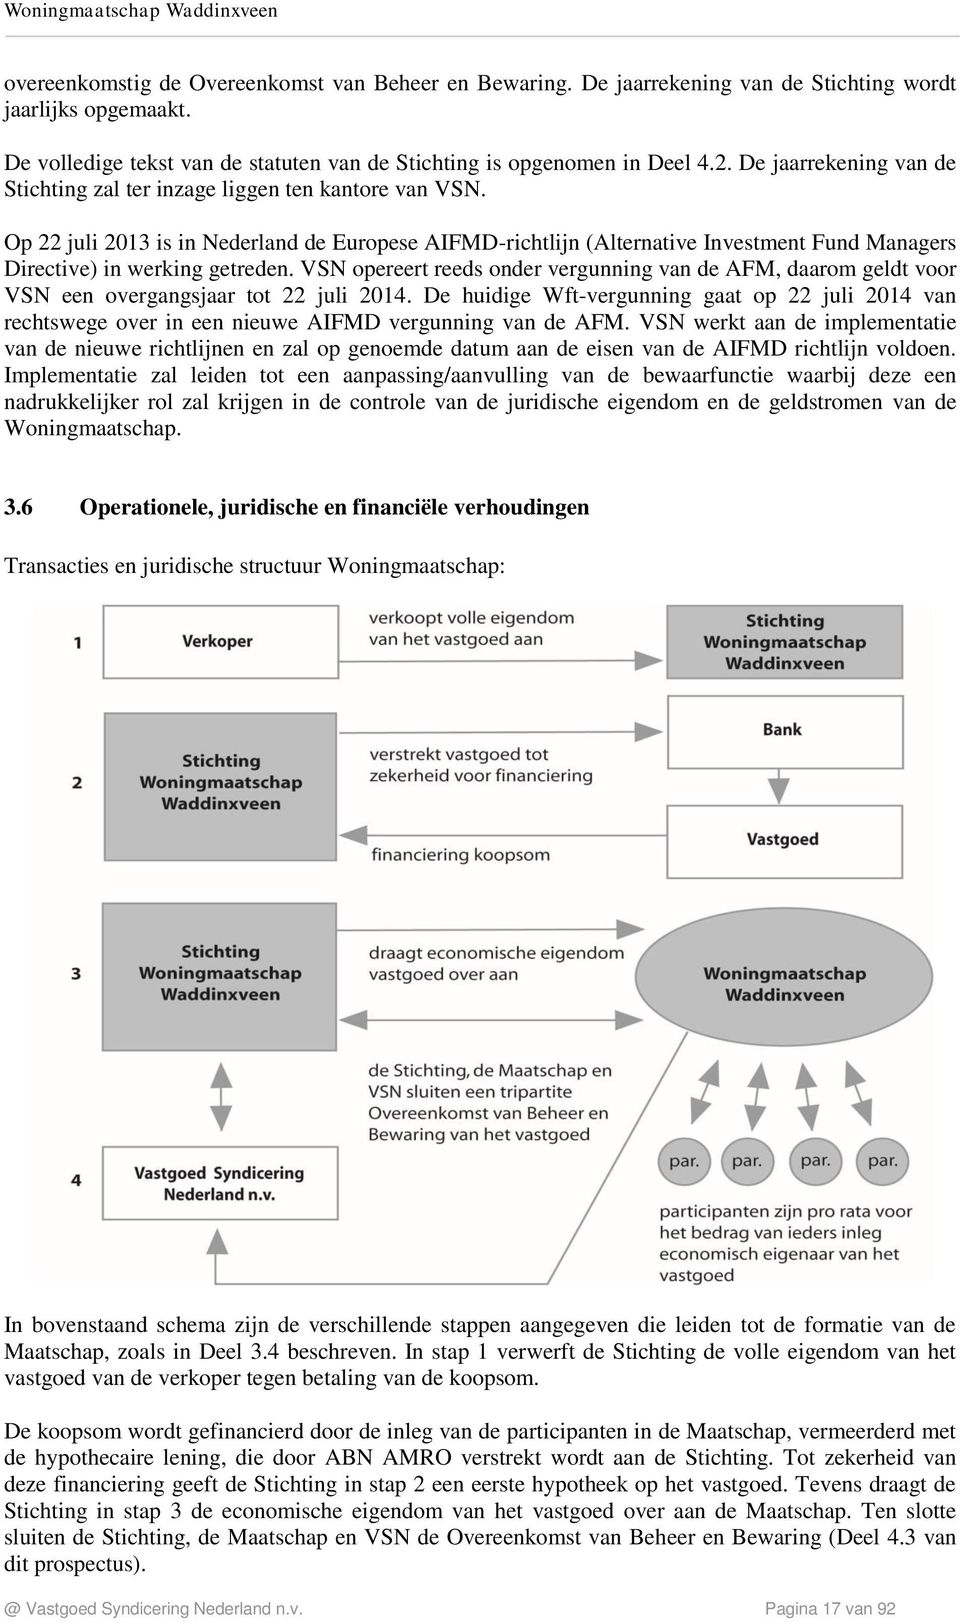 Op 22 juli 2013 is in Nederland de Europese AIFMD-richtlijn (Alternative Investment Fund Managers Directive) in werking getreden.